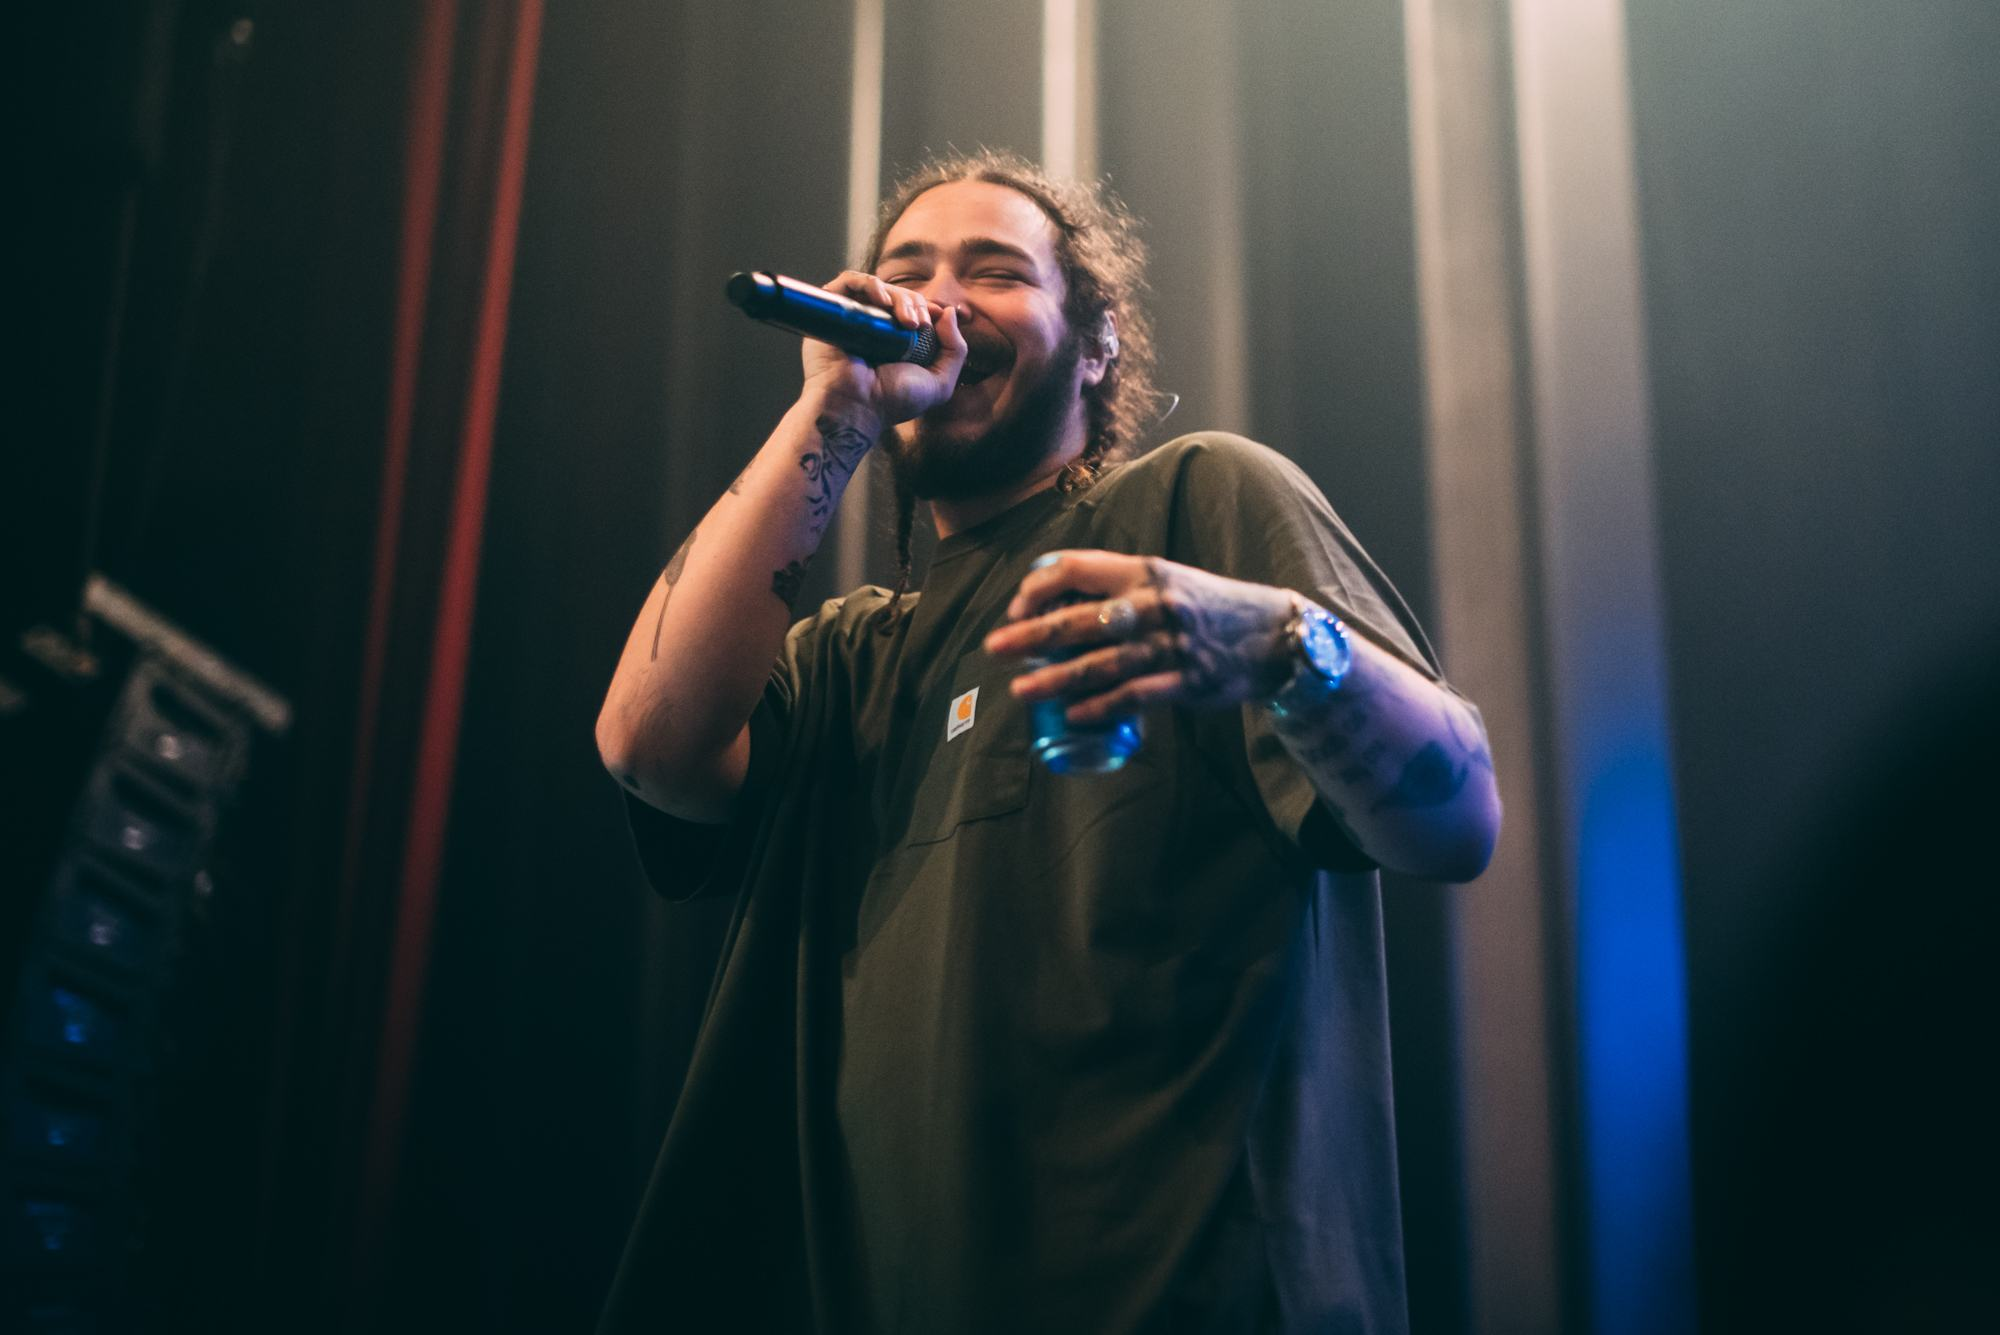 Post Malone/Brandon Artis Photography